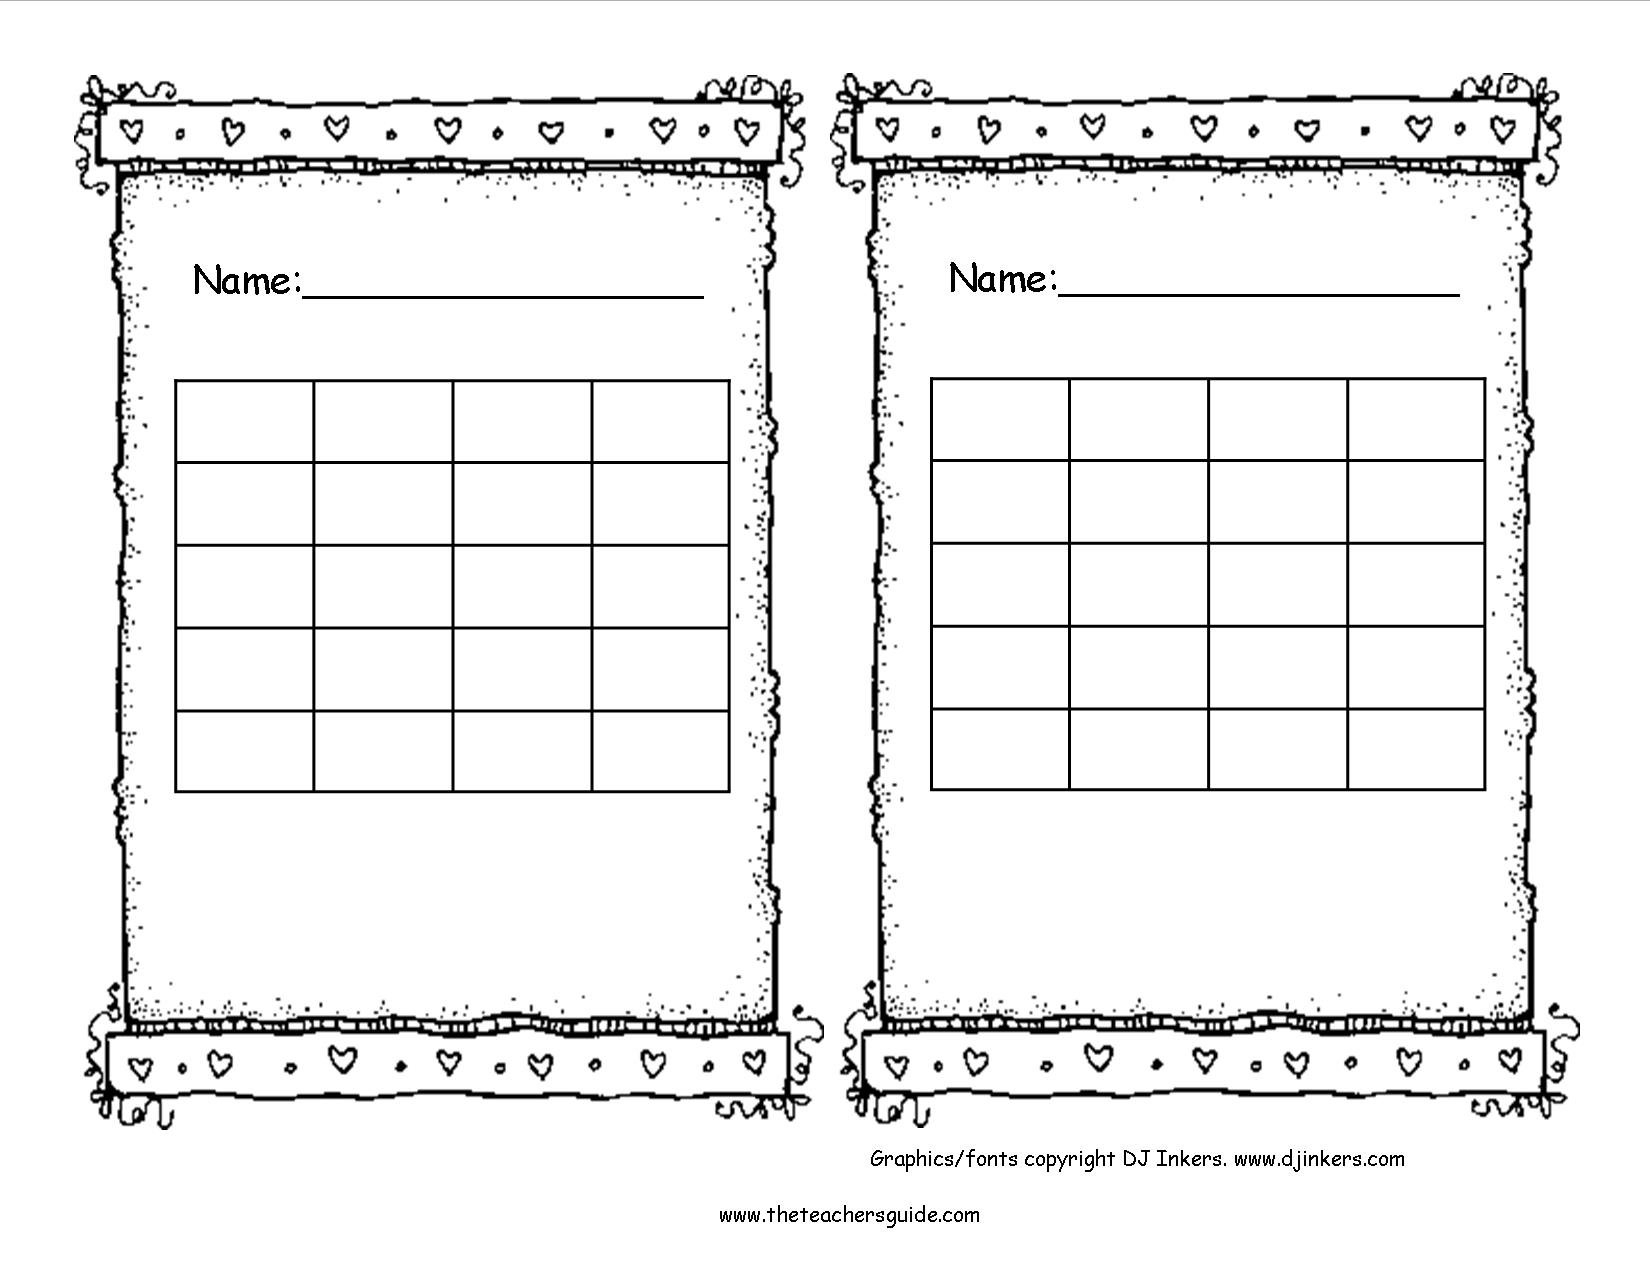 Printable Weekly Calendar With 15 Minute Time Slots Monday Through Friday Chart Wincalnder